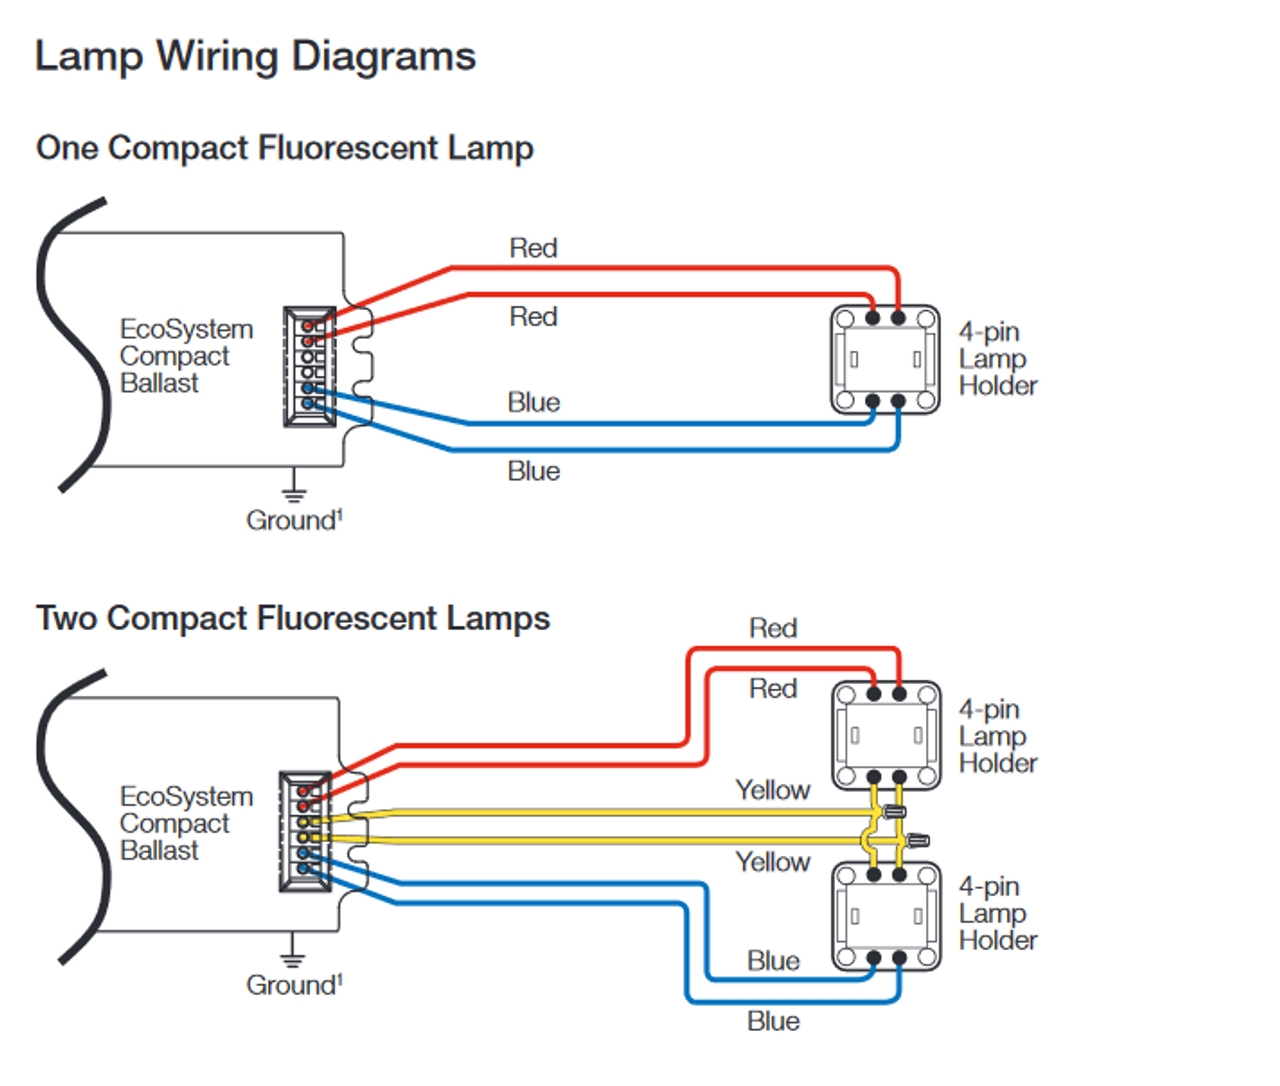 4 Pin Bulb Wiring | Wiring Diagram Halco Bulb Ballast Wiring Diagram on fluorescent fixtures t5 circuit diagram, ballast replacement diagram, two lamp ballast wire diagram, 4 bulb ballast wiring two, 4 pin ballast wiring diagram, 2 bulb ballast wiring diagram,